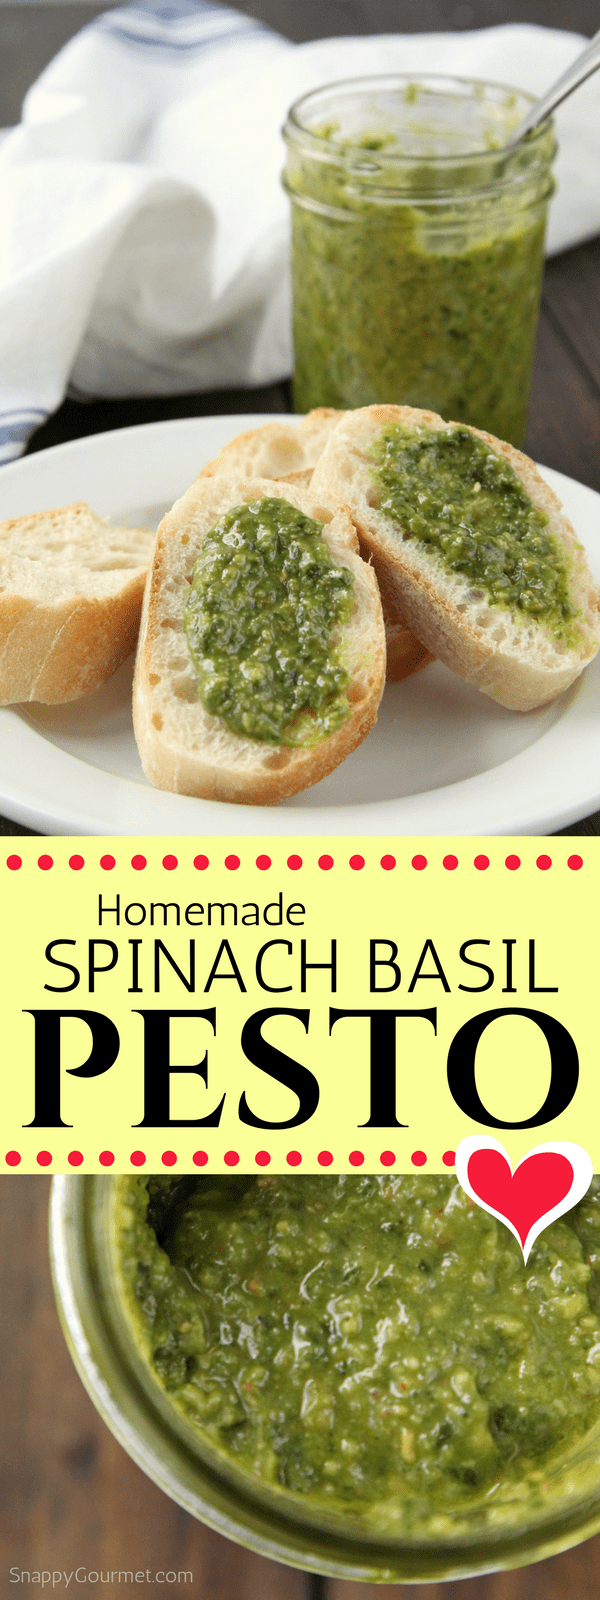 Homemade Spinach Basil Pesto Recipe - how to make homemade pesto in a blender of vitamix